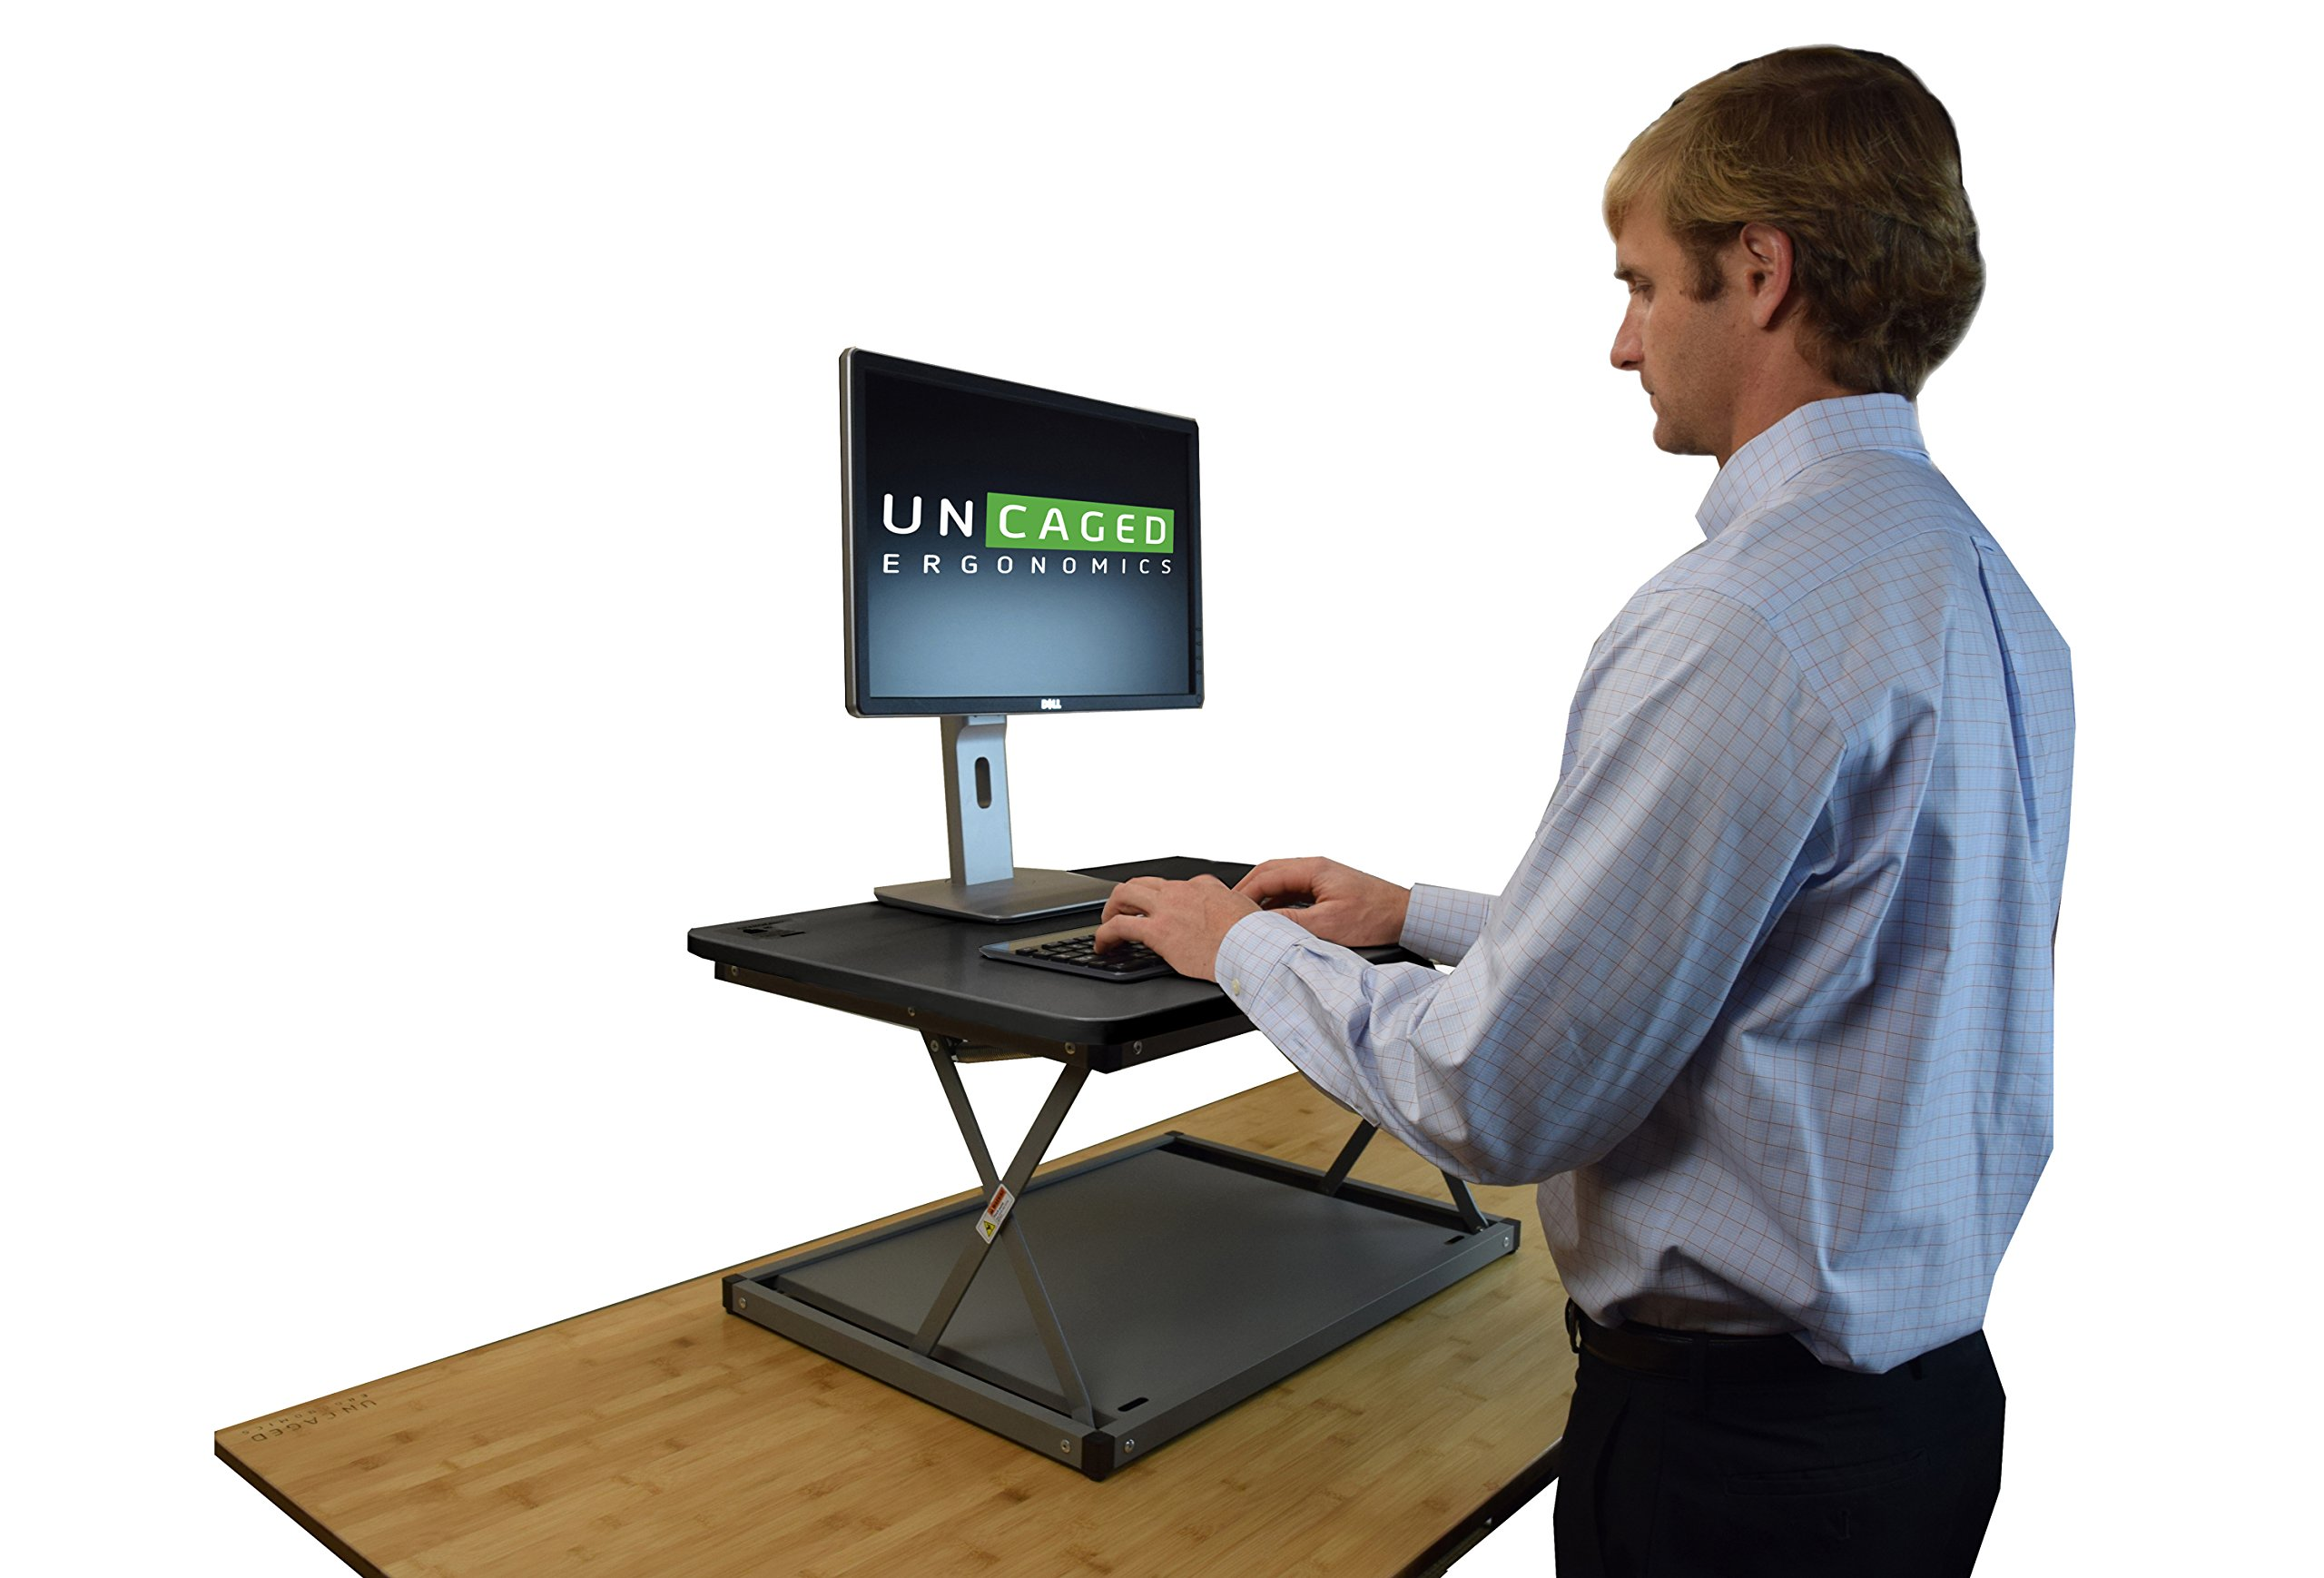 CHANGEdesk Mini Small Adjustable Height Standing Desk Converter for Laptop MacBook Single Monitor Desktop Computer Portable Lightweight Ergonomic sit Stand up Corner Riser Affordable Compact Tabletop by Uncaged Ergonomics (Image #9)